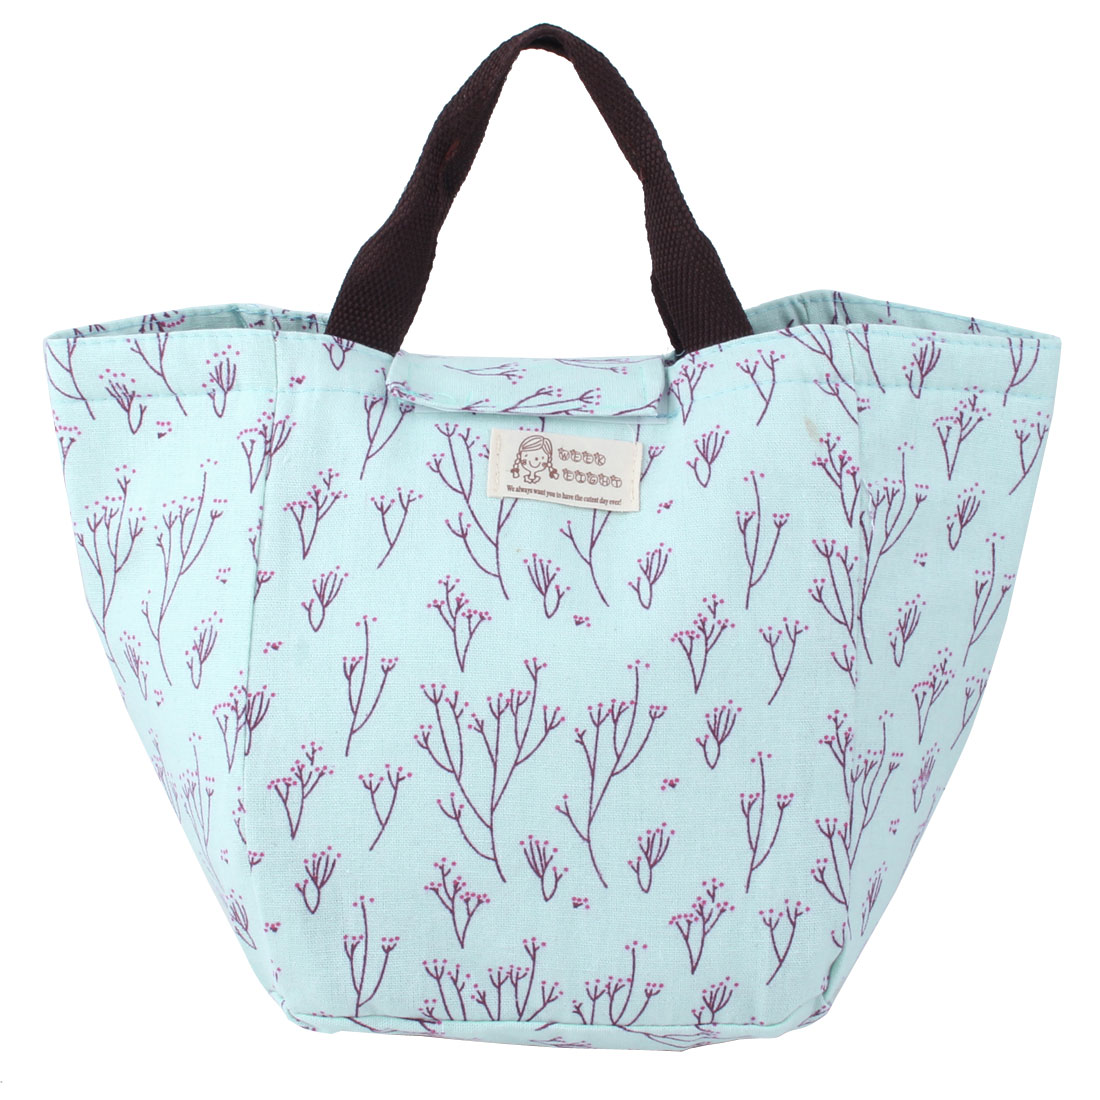 Women Outdoor Travel Printing Design Lunch Bag Handbag Picnic Tote Carry Box Storage